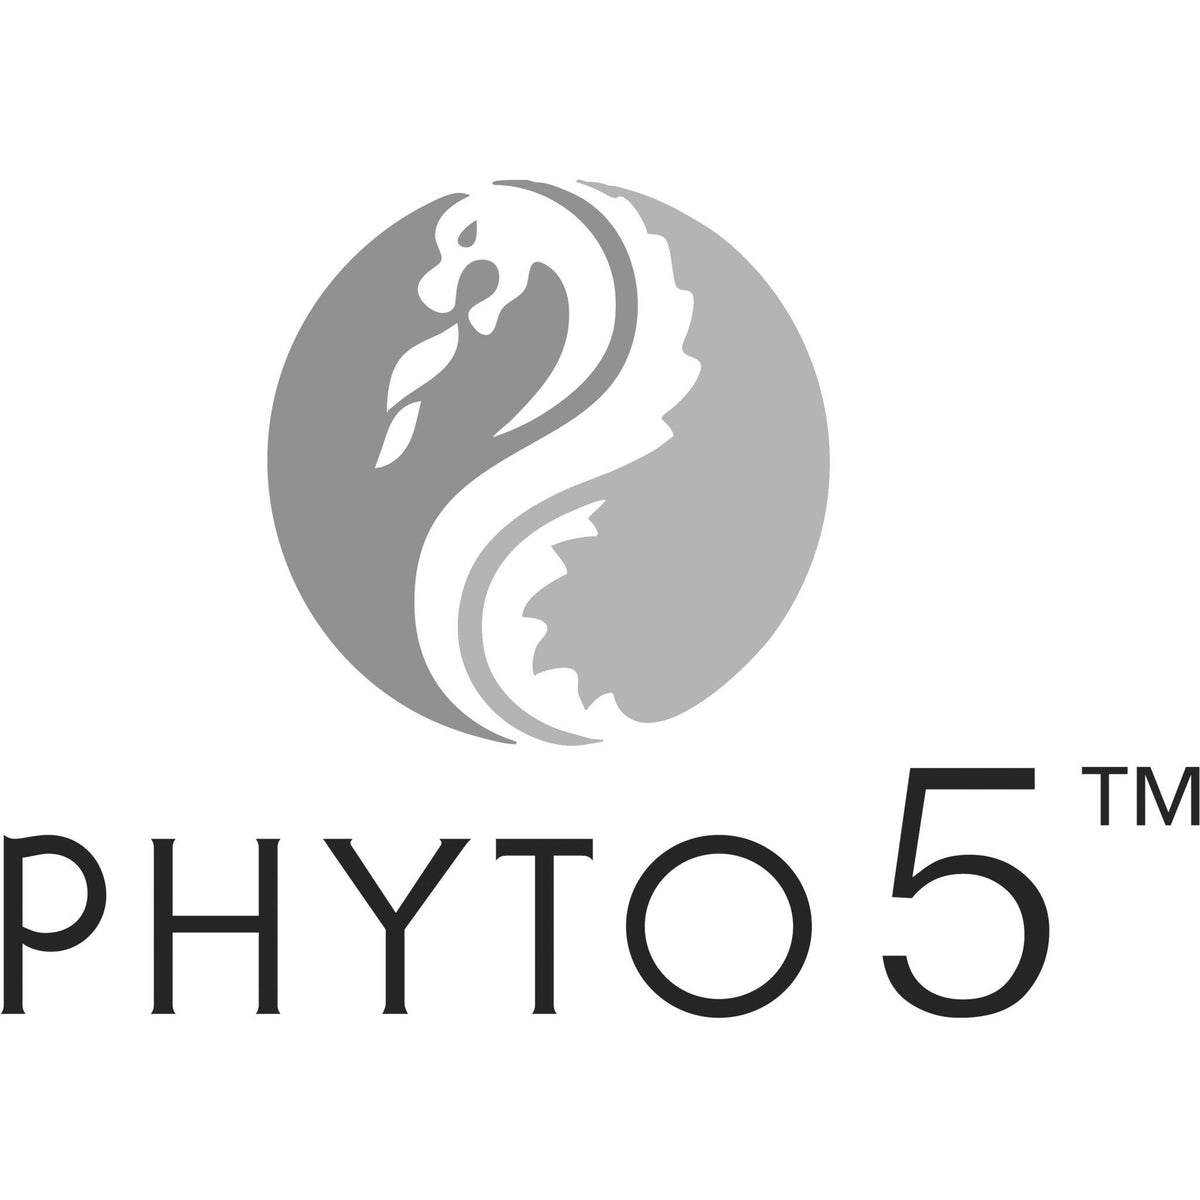 PHYTO 5 - Algoderm Base Cream Face Mask